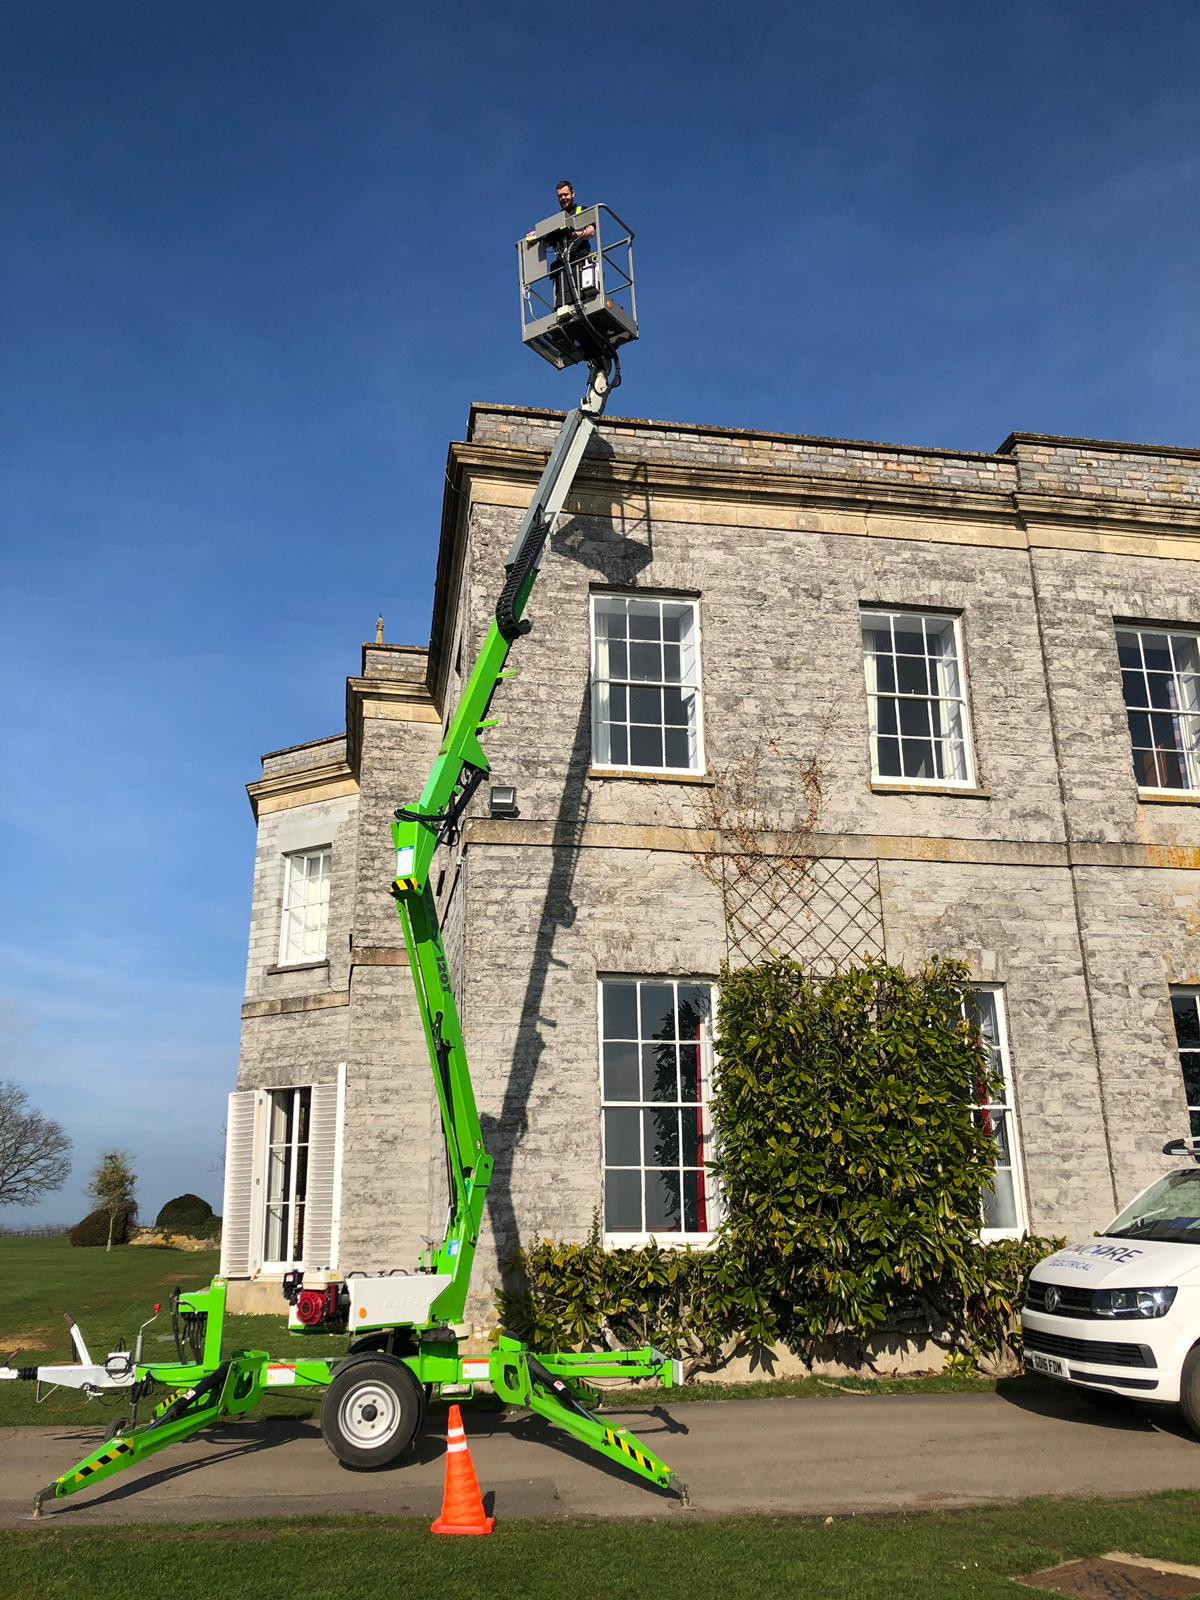 Our new tow-along cherry picker is available for high-level electrical and lighting projects throughout Somerset and the South West.